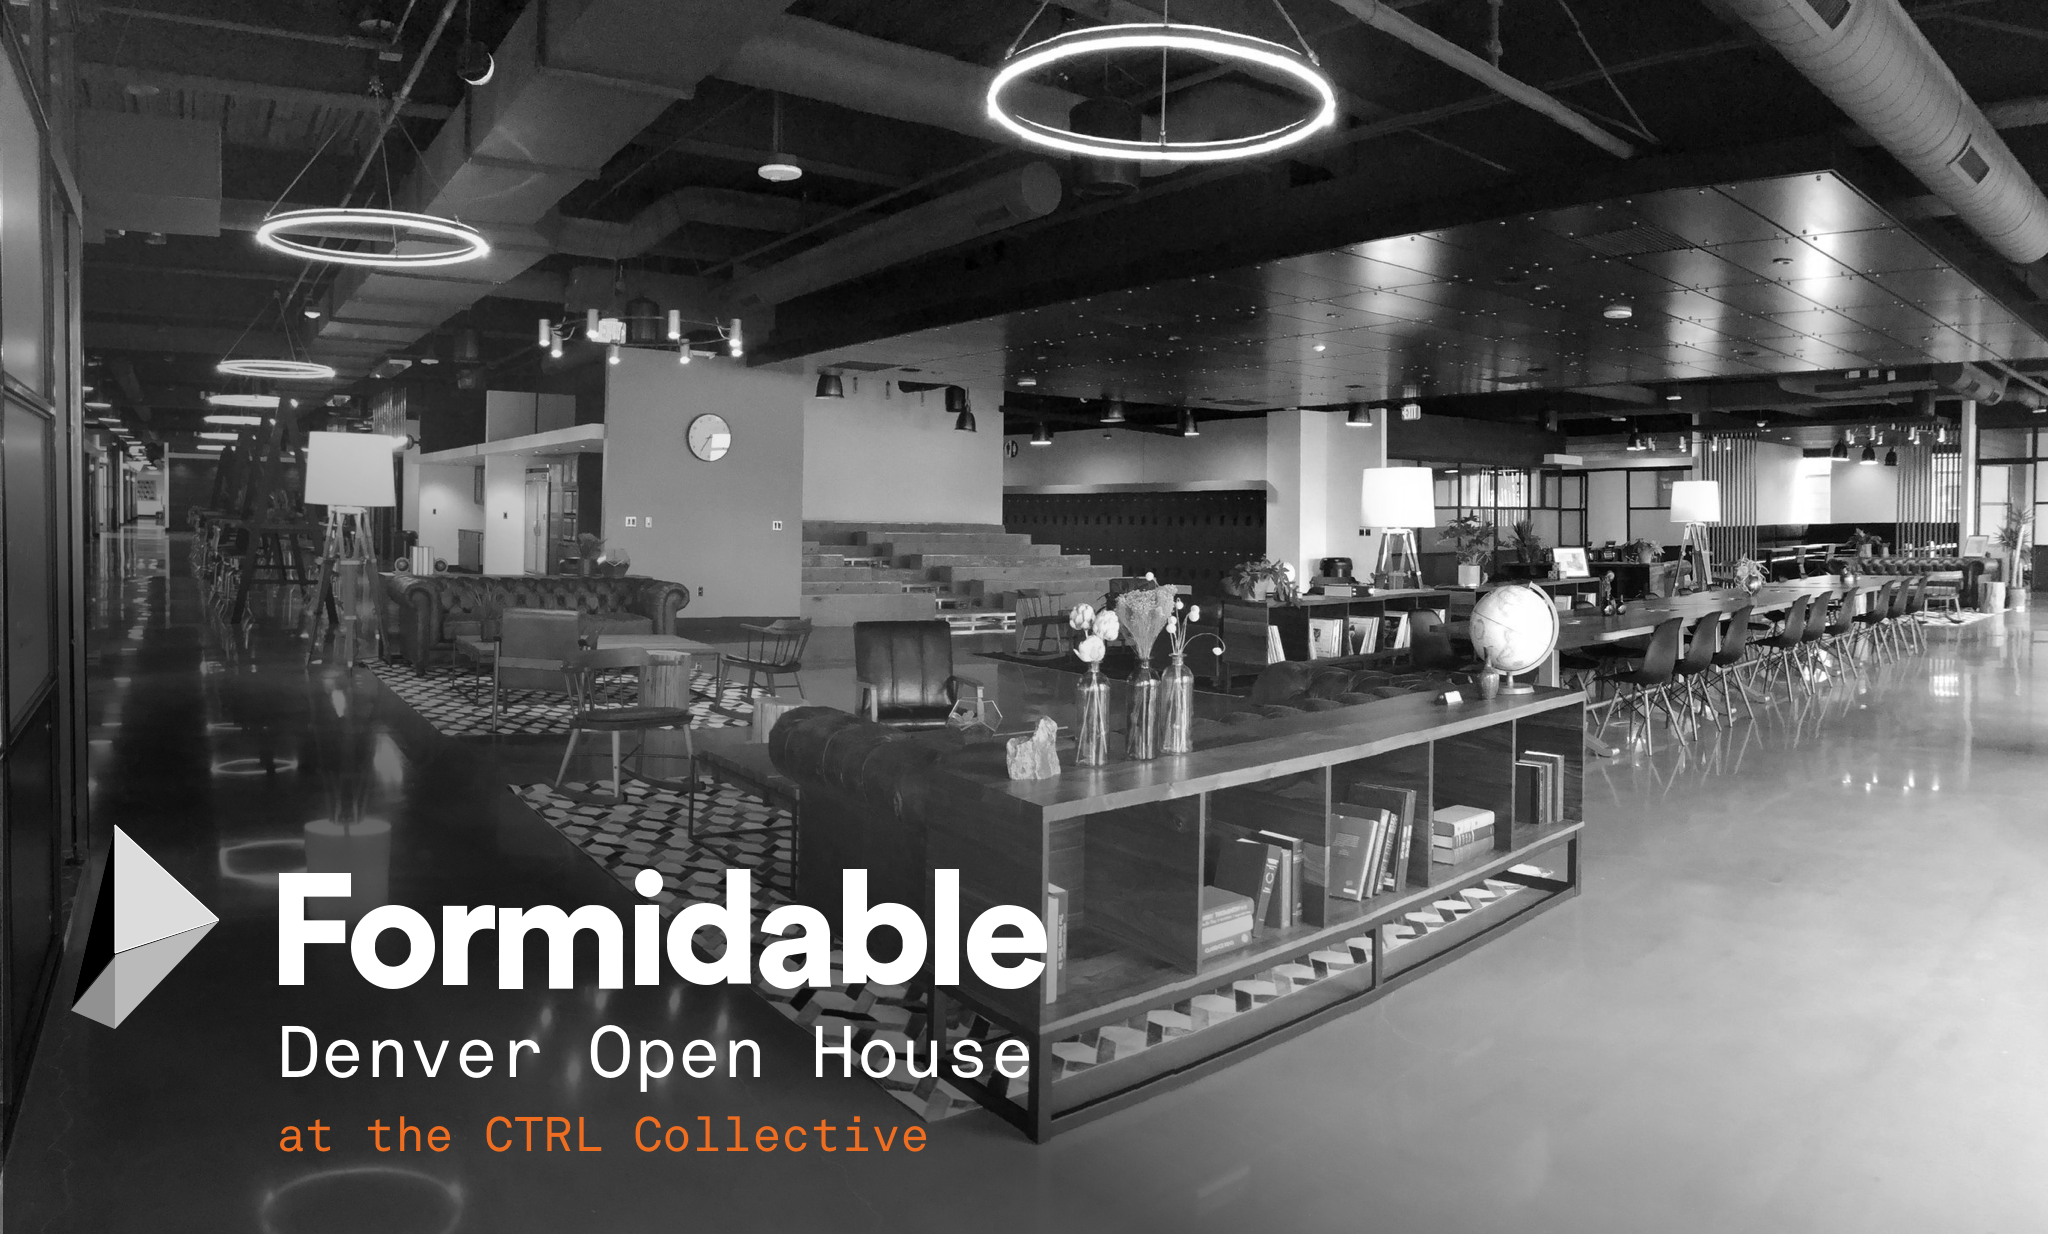 Formidable Denver Open House at the CTRL Collective